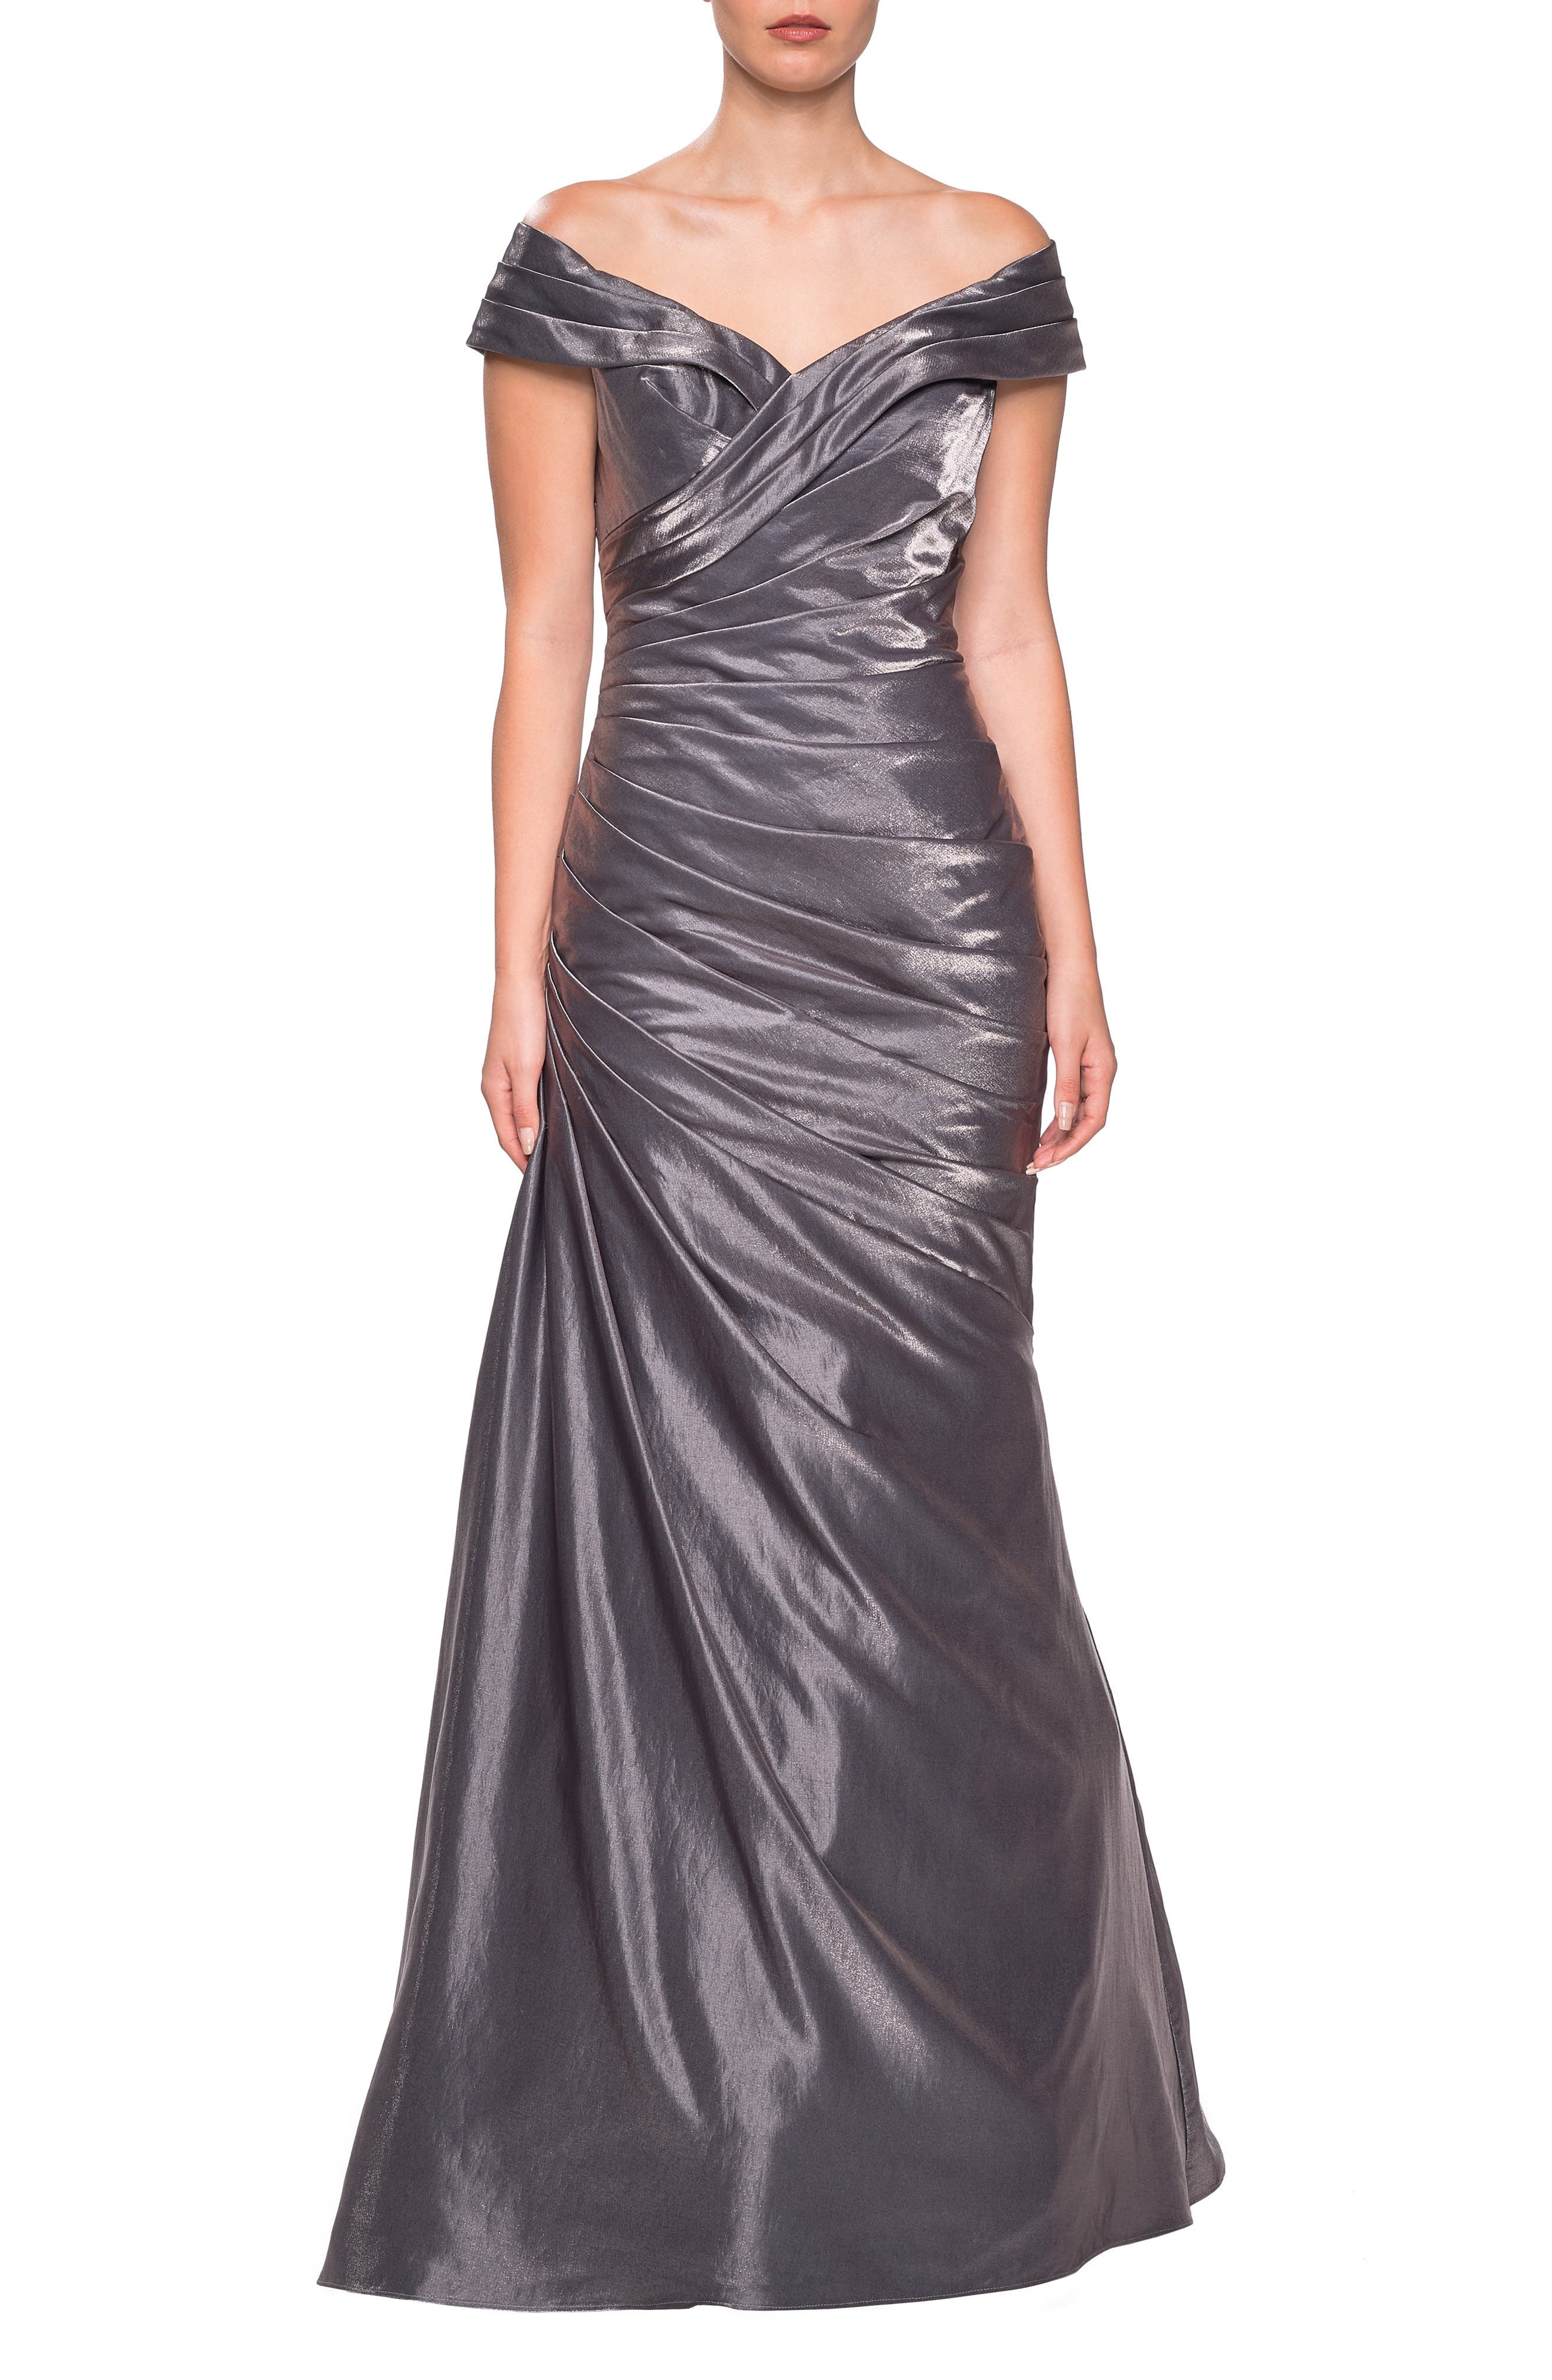 LA FEMME Ruched Two-Tone Satin Gown in Platinum